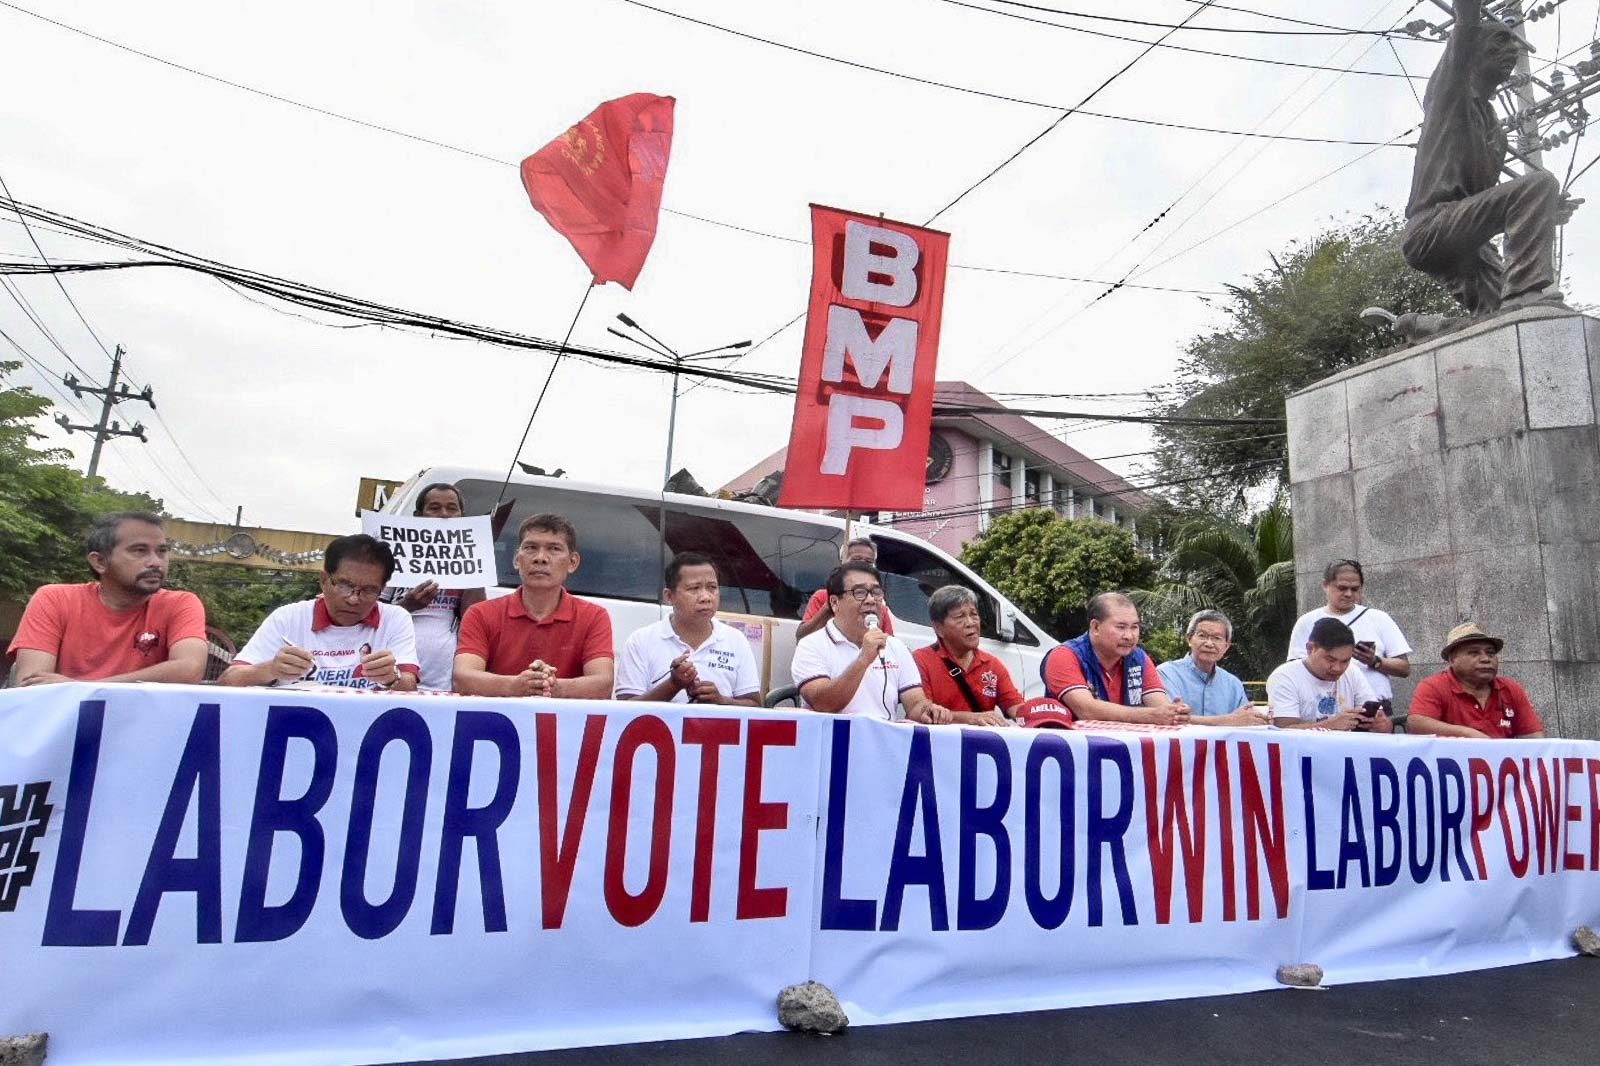 LABOR VOTE? Labor Win candidates appeal for a 'labor vote' for the midterm elections during their press conference in Manila on Labor Day, May 1, 2019. Photo by Angie de Silva/Rappler